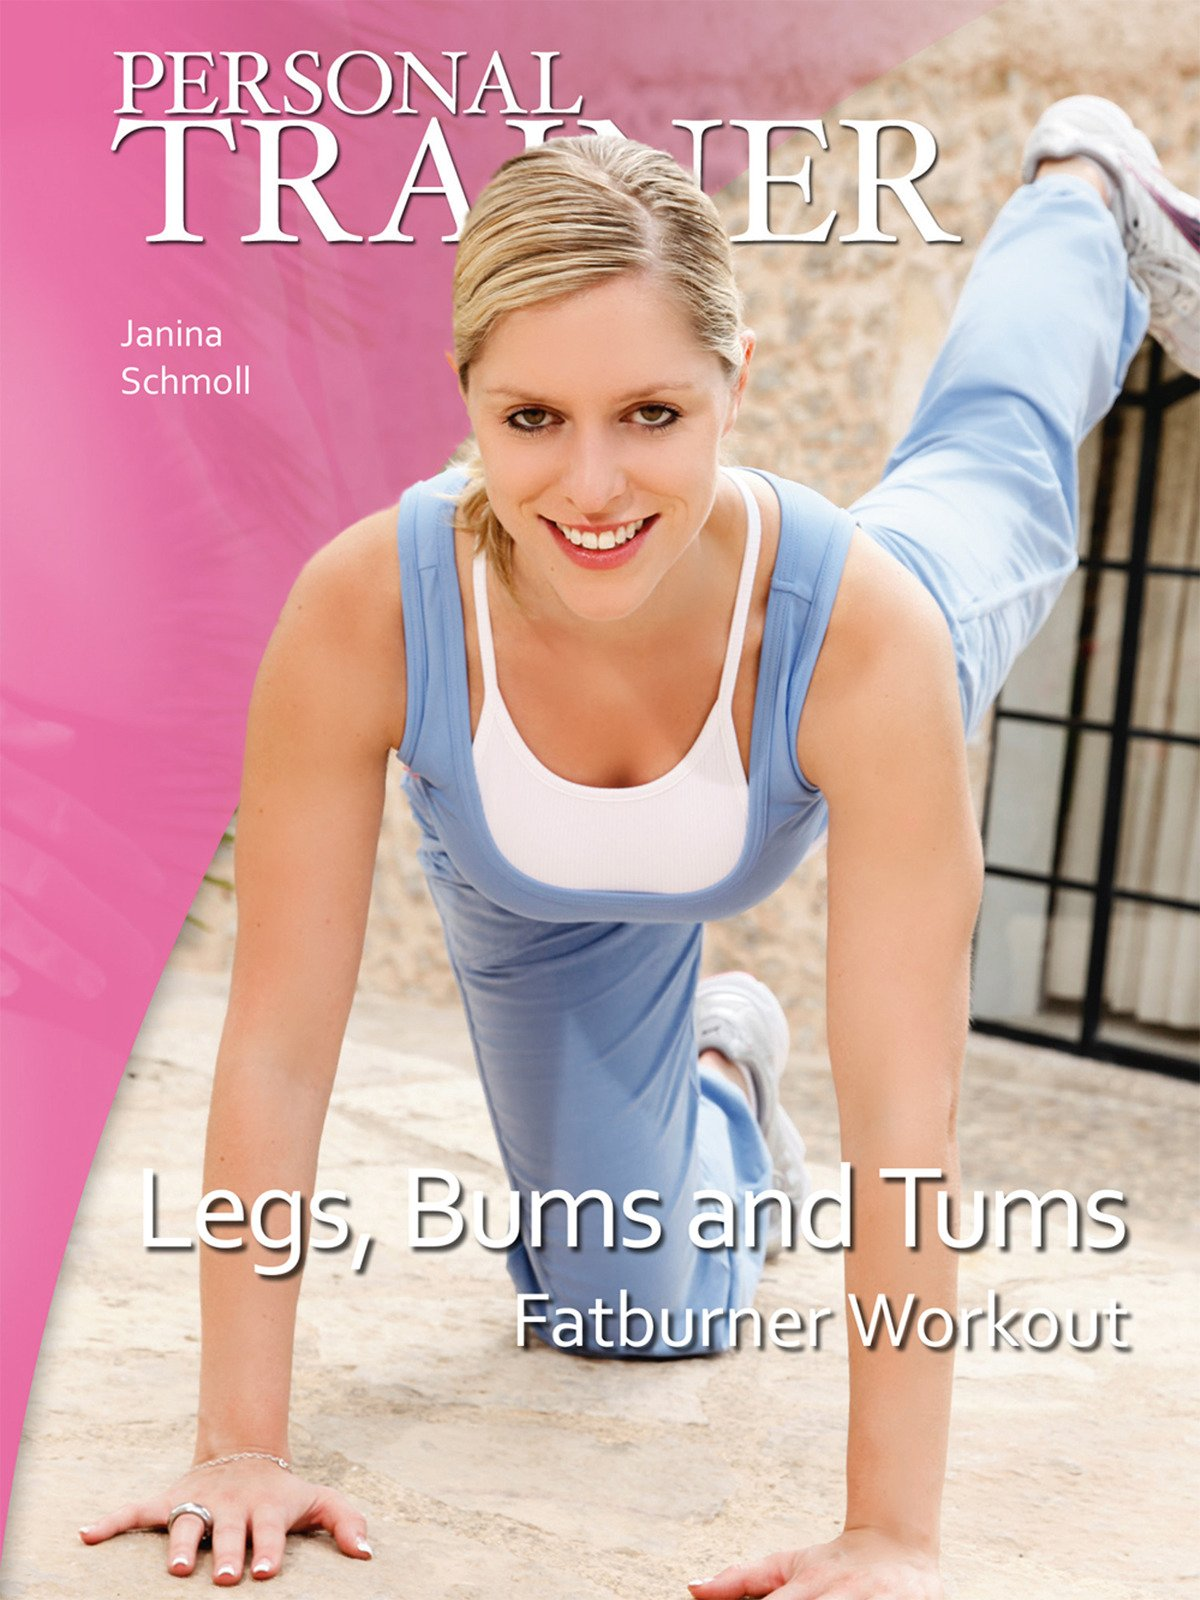 Personal Trainer: Legs, Bums and Tums